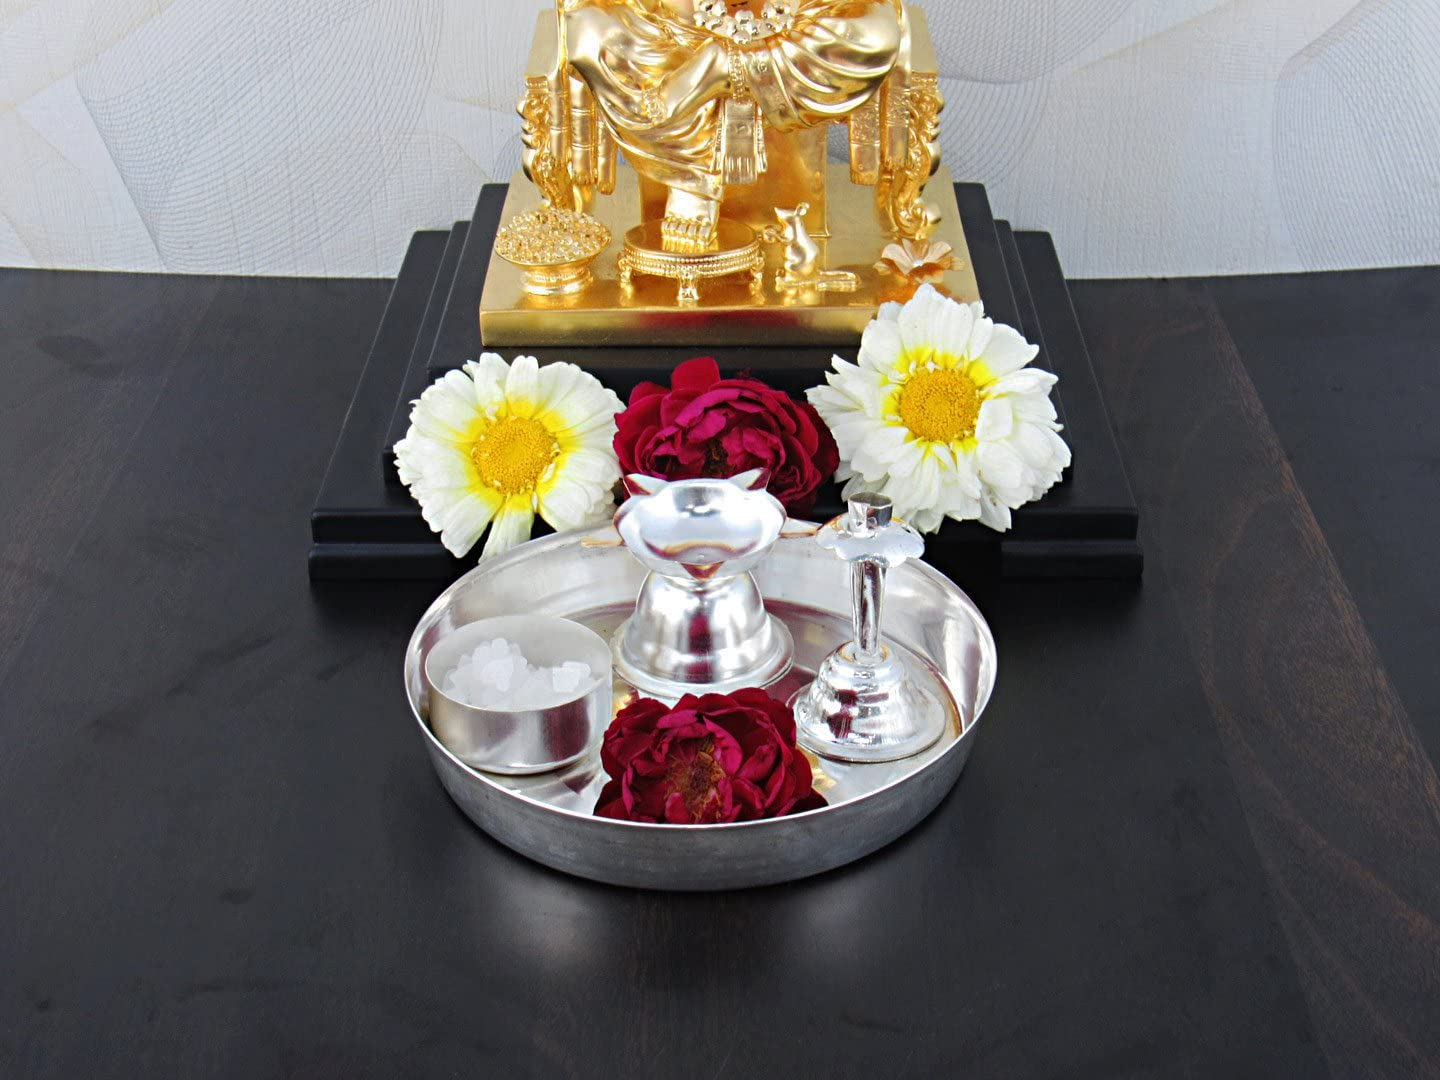 GoldGiftIdeas 5 Inch Silver Plated Pooja Thali Set, Pooja Thali Decorative, Return Gift for Baby Shower and Indian Festival